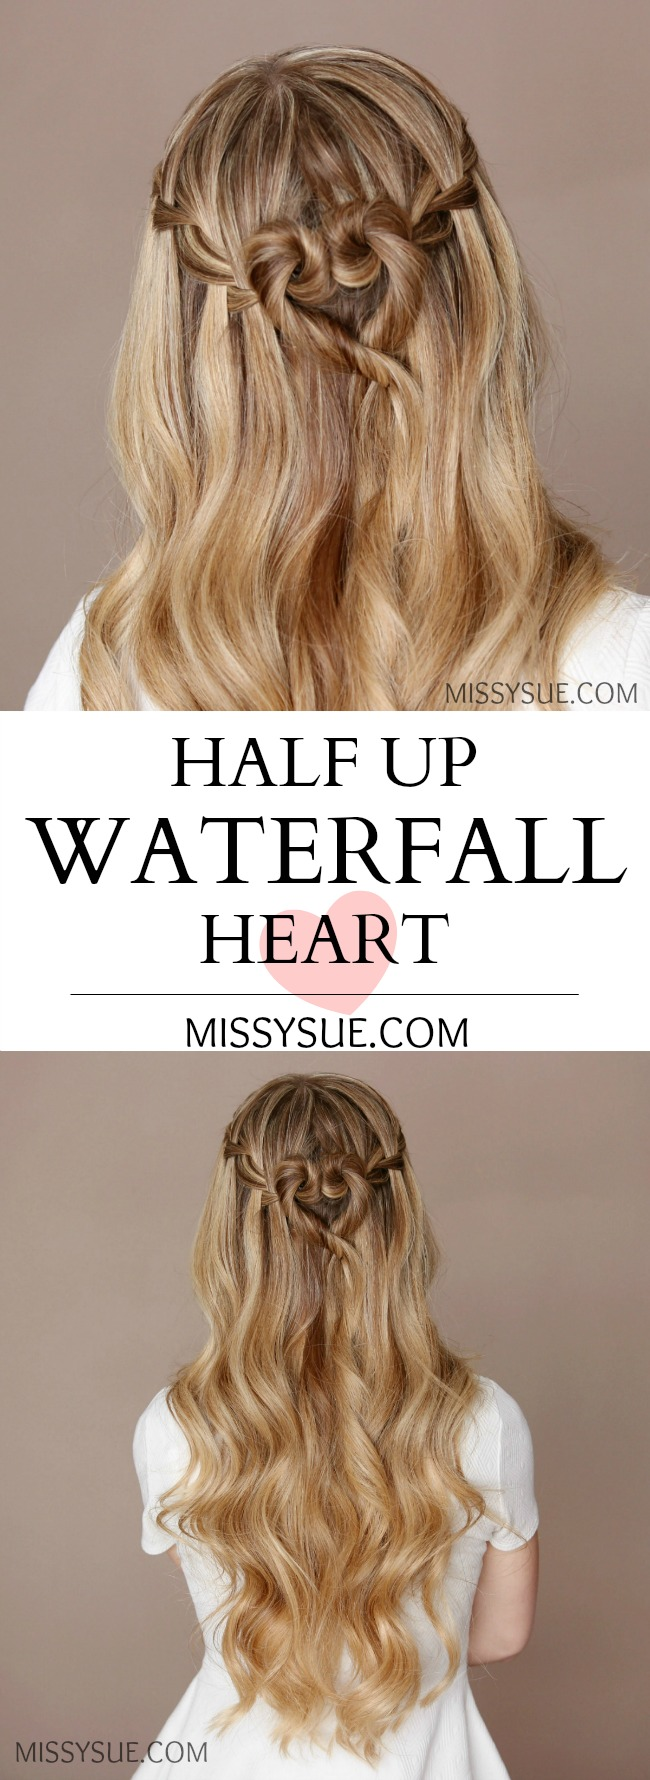 Half Up Waterfall Heart